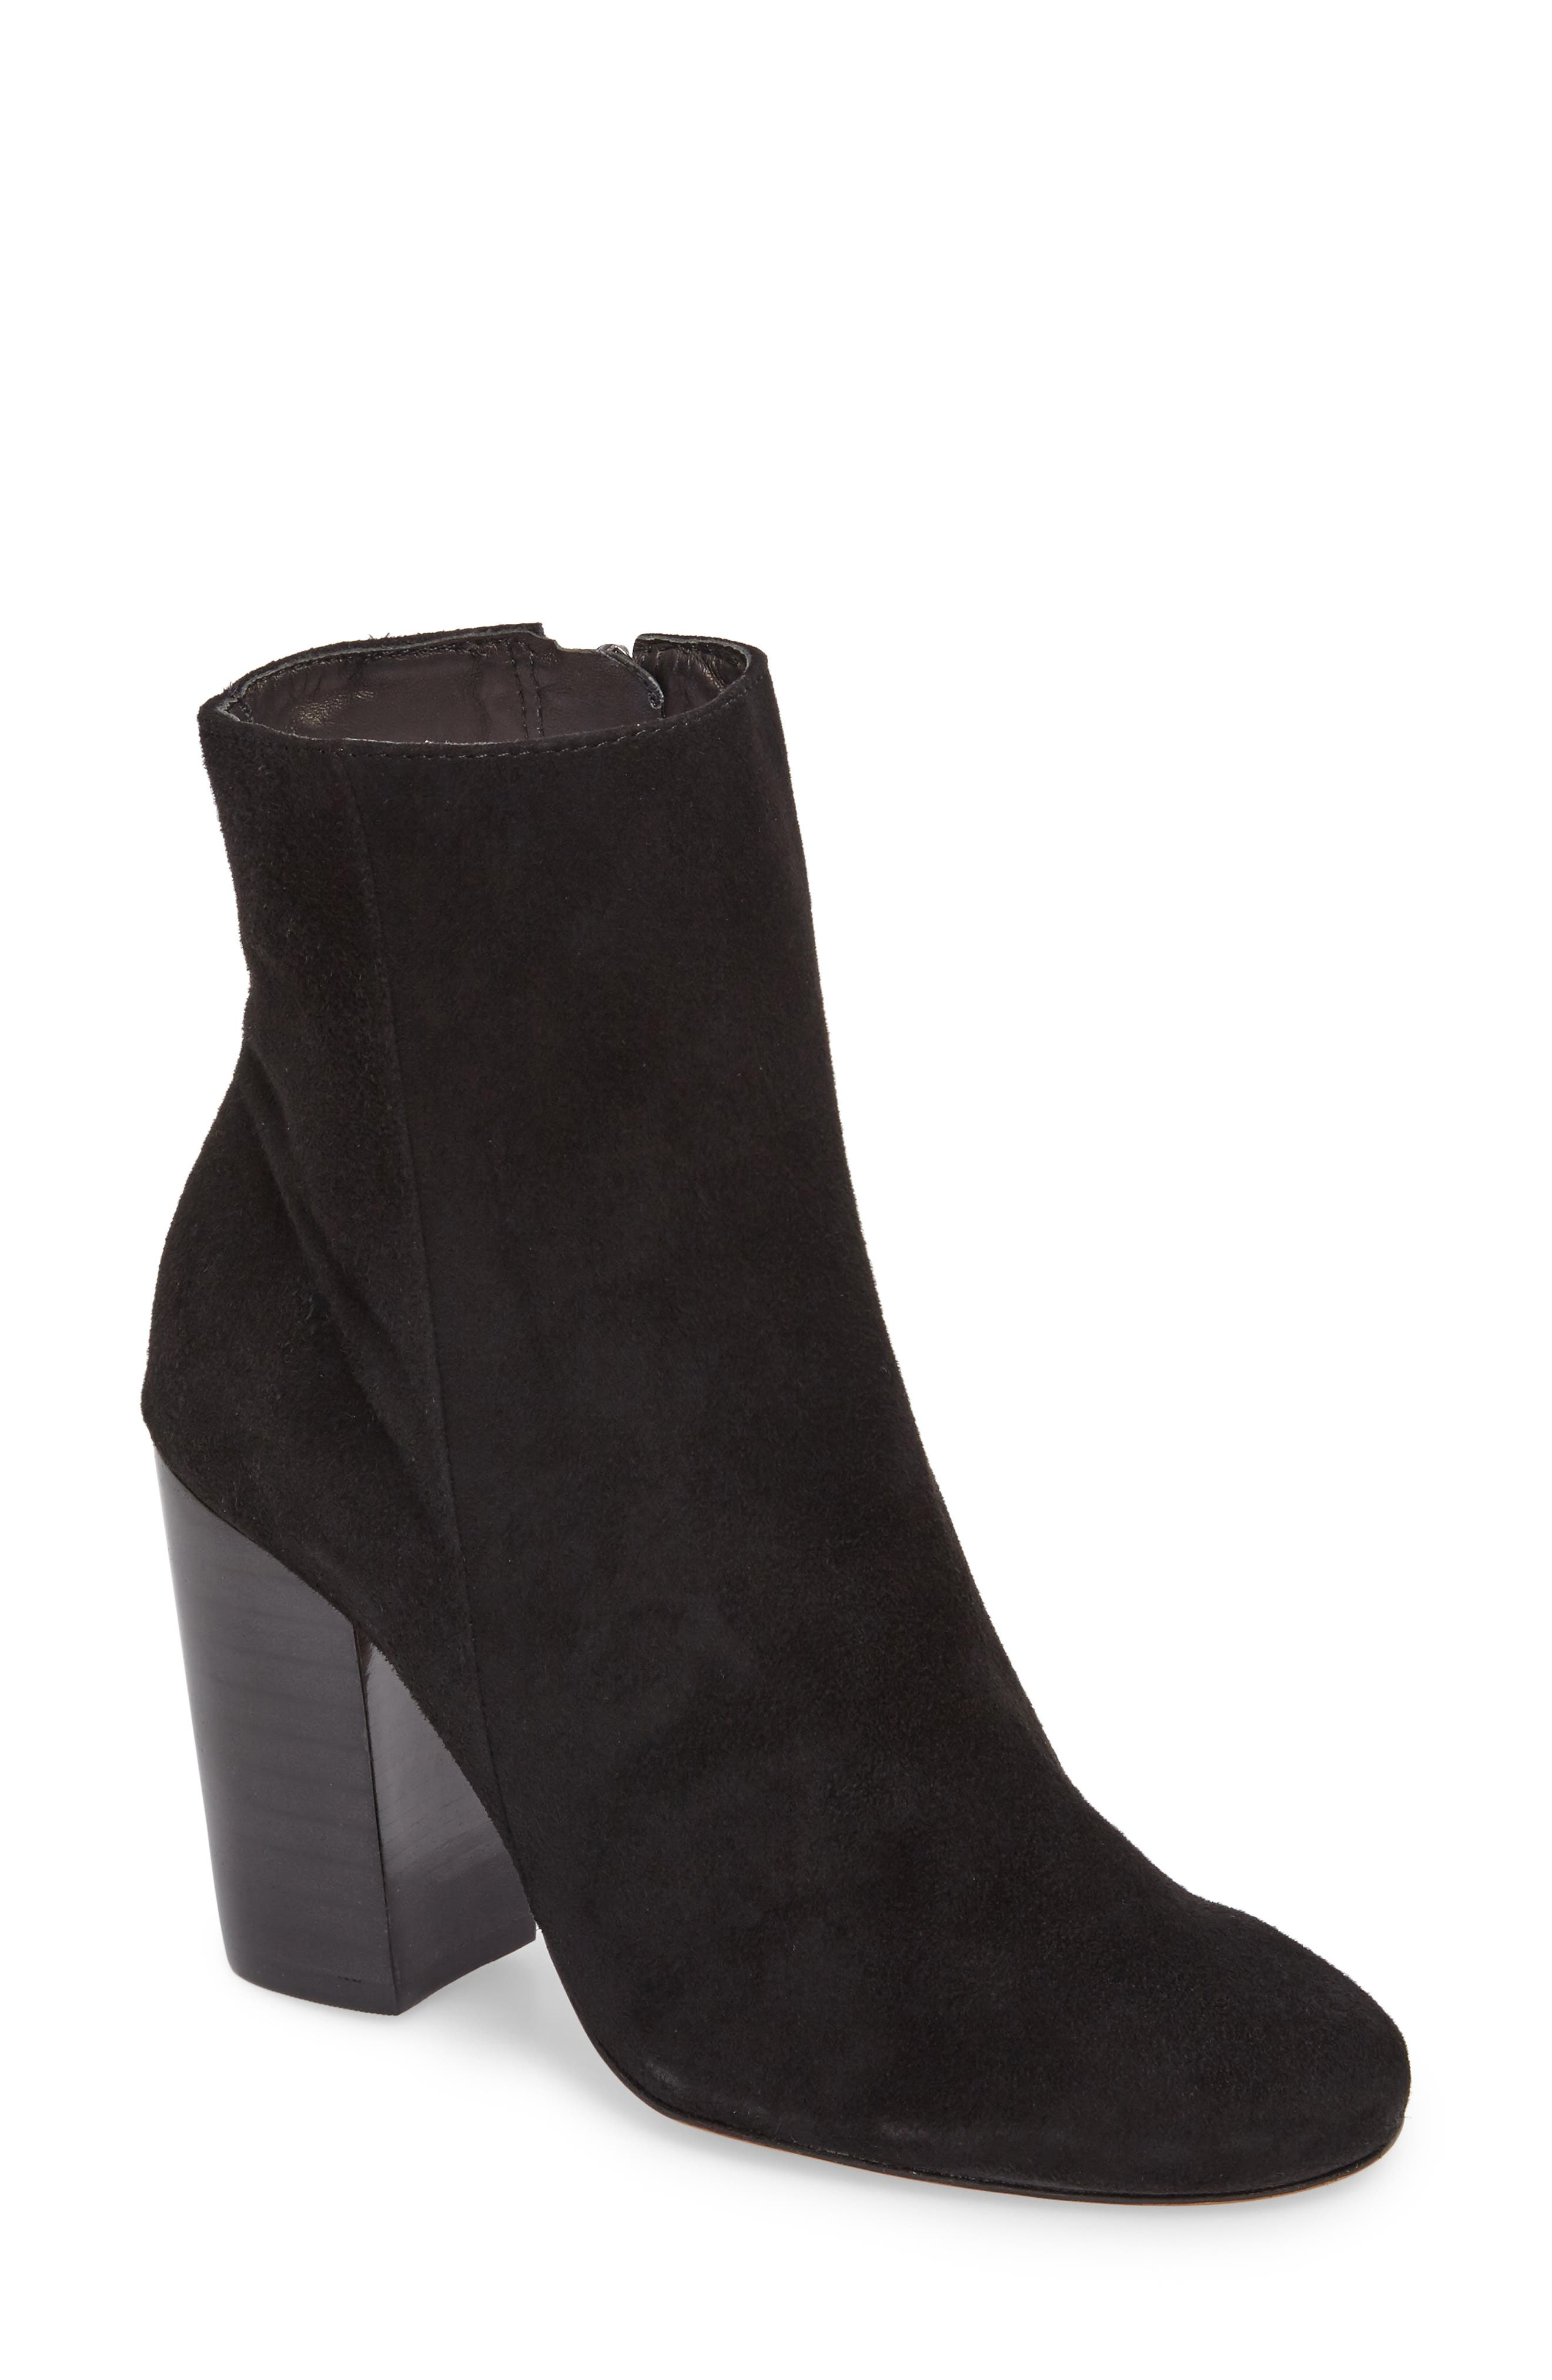 Ravan Block Heel Bootie,                             Main thumbnail 1, color,                             001